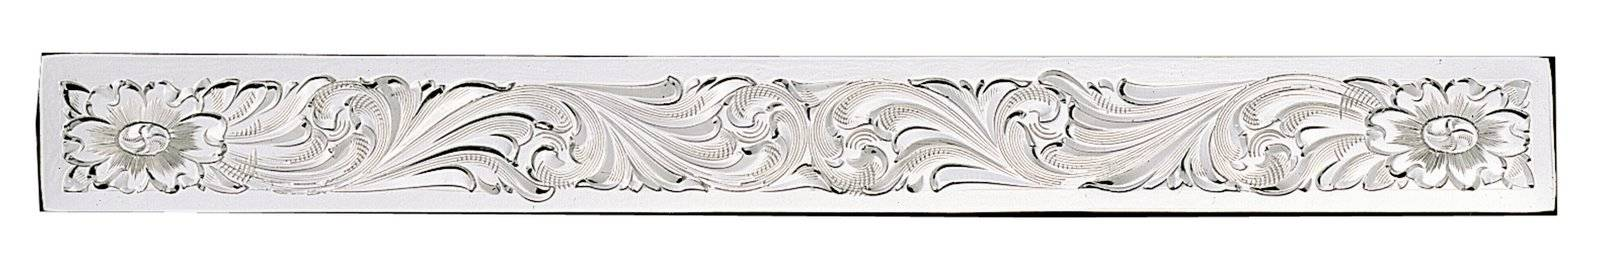 Montana Silversmiths Clear Edge Engraved Silver Brow Band Plate